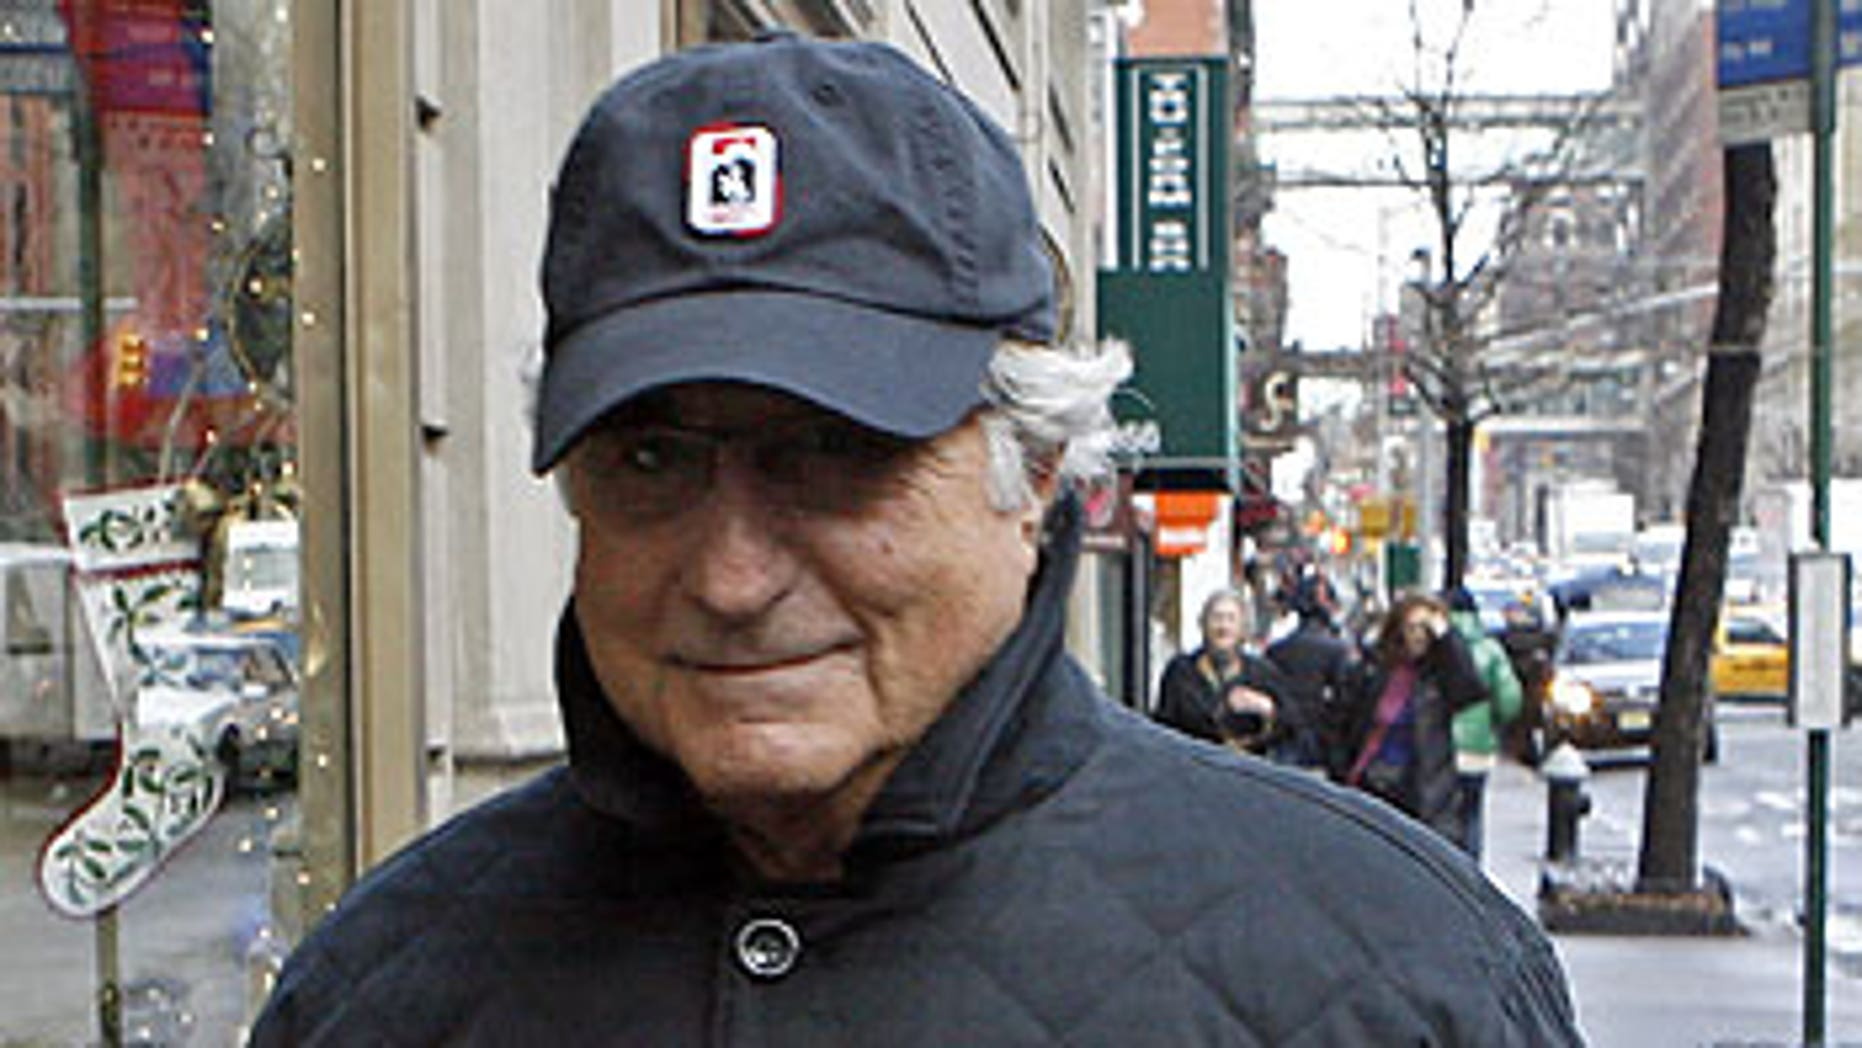 Dec. 17, 2008: Bernard Madoff, chairman of Madoff Investment Securities, returns to his Manhattan apartment after making a court appearance.